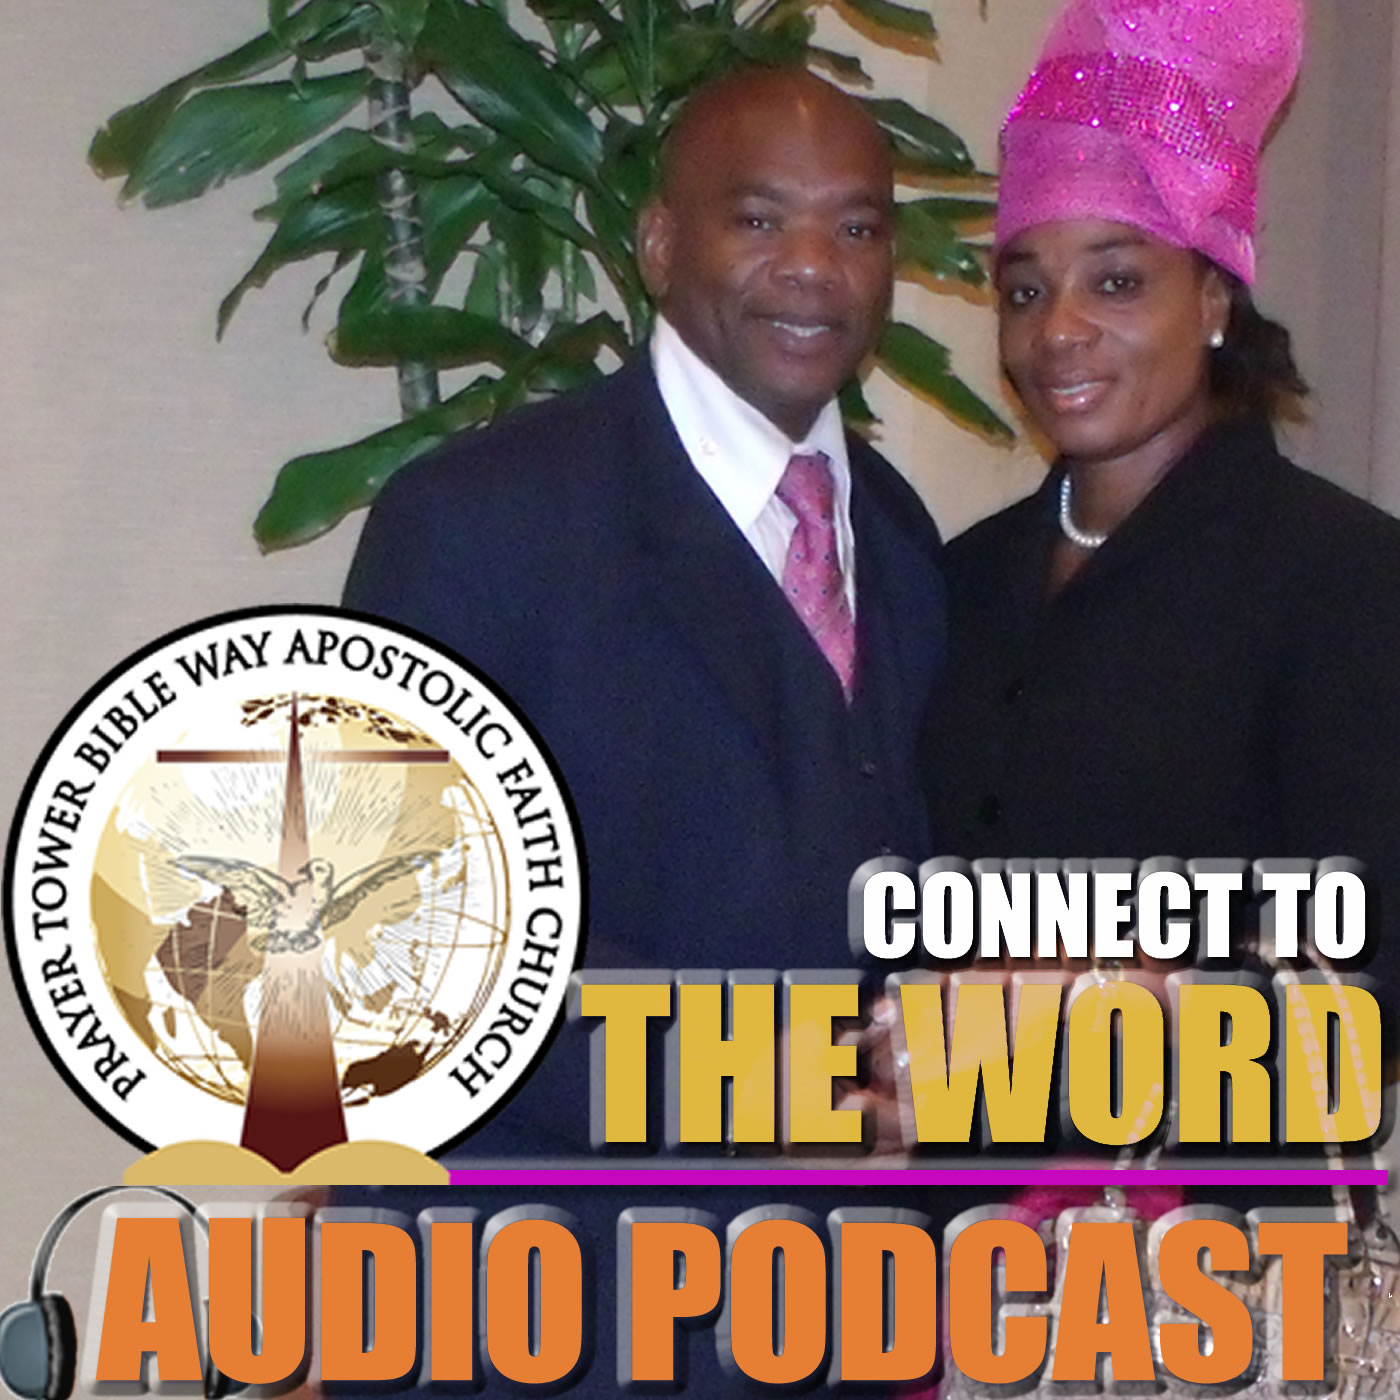 Prayer Tower Bible Way Apostolic Faith Church Audio Podcast